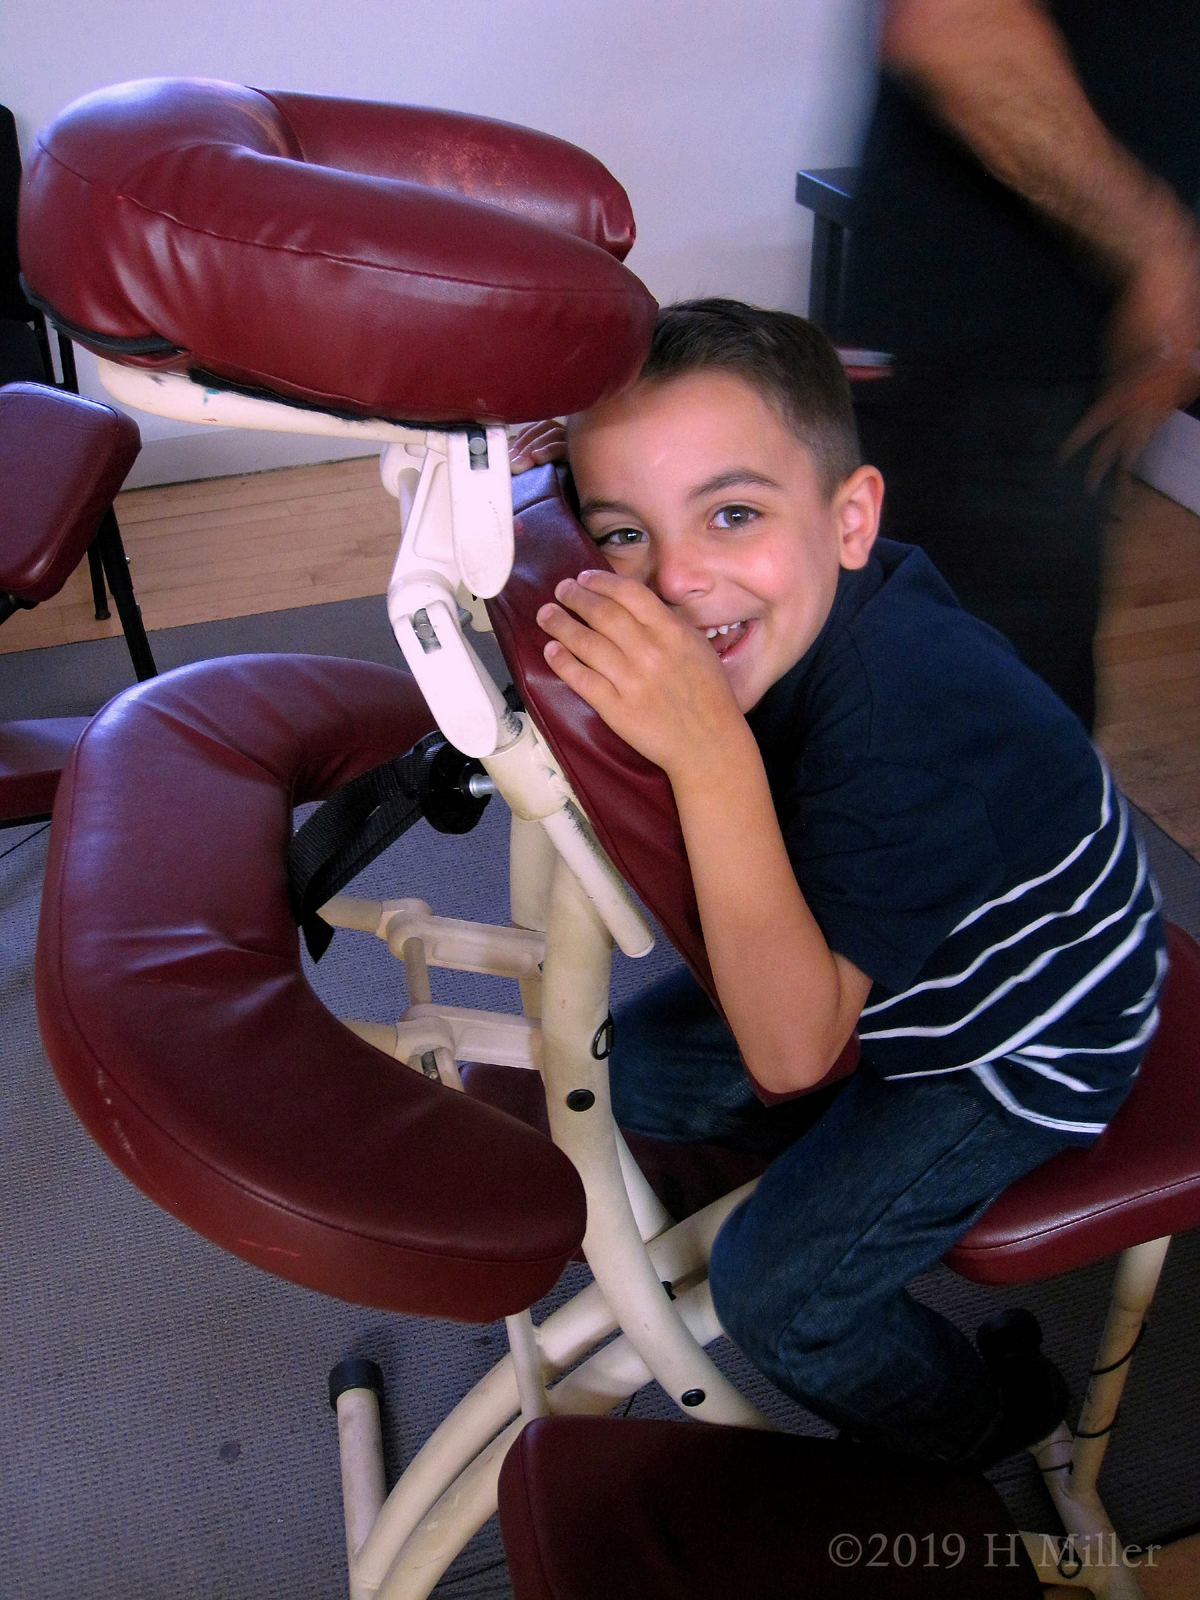 Chair Massage At Flat Rate Featured Children Participating In The Fun